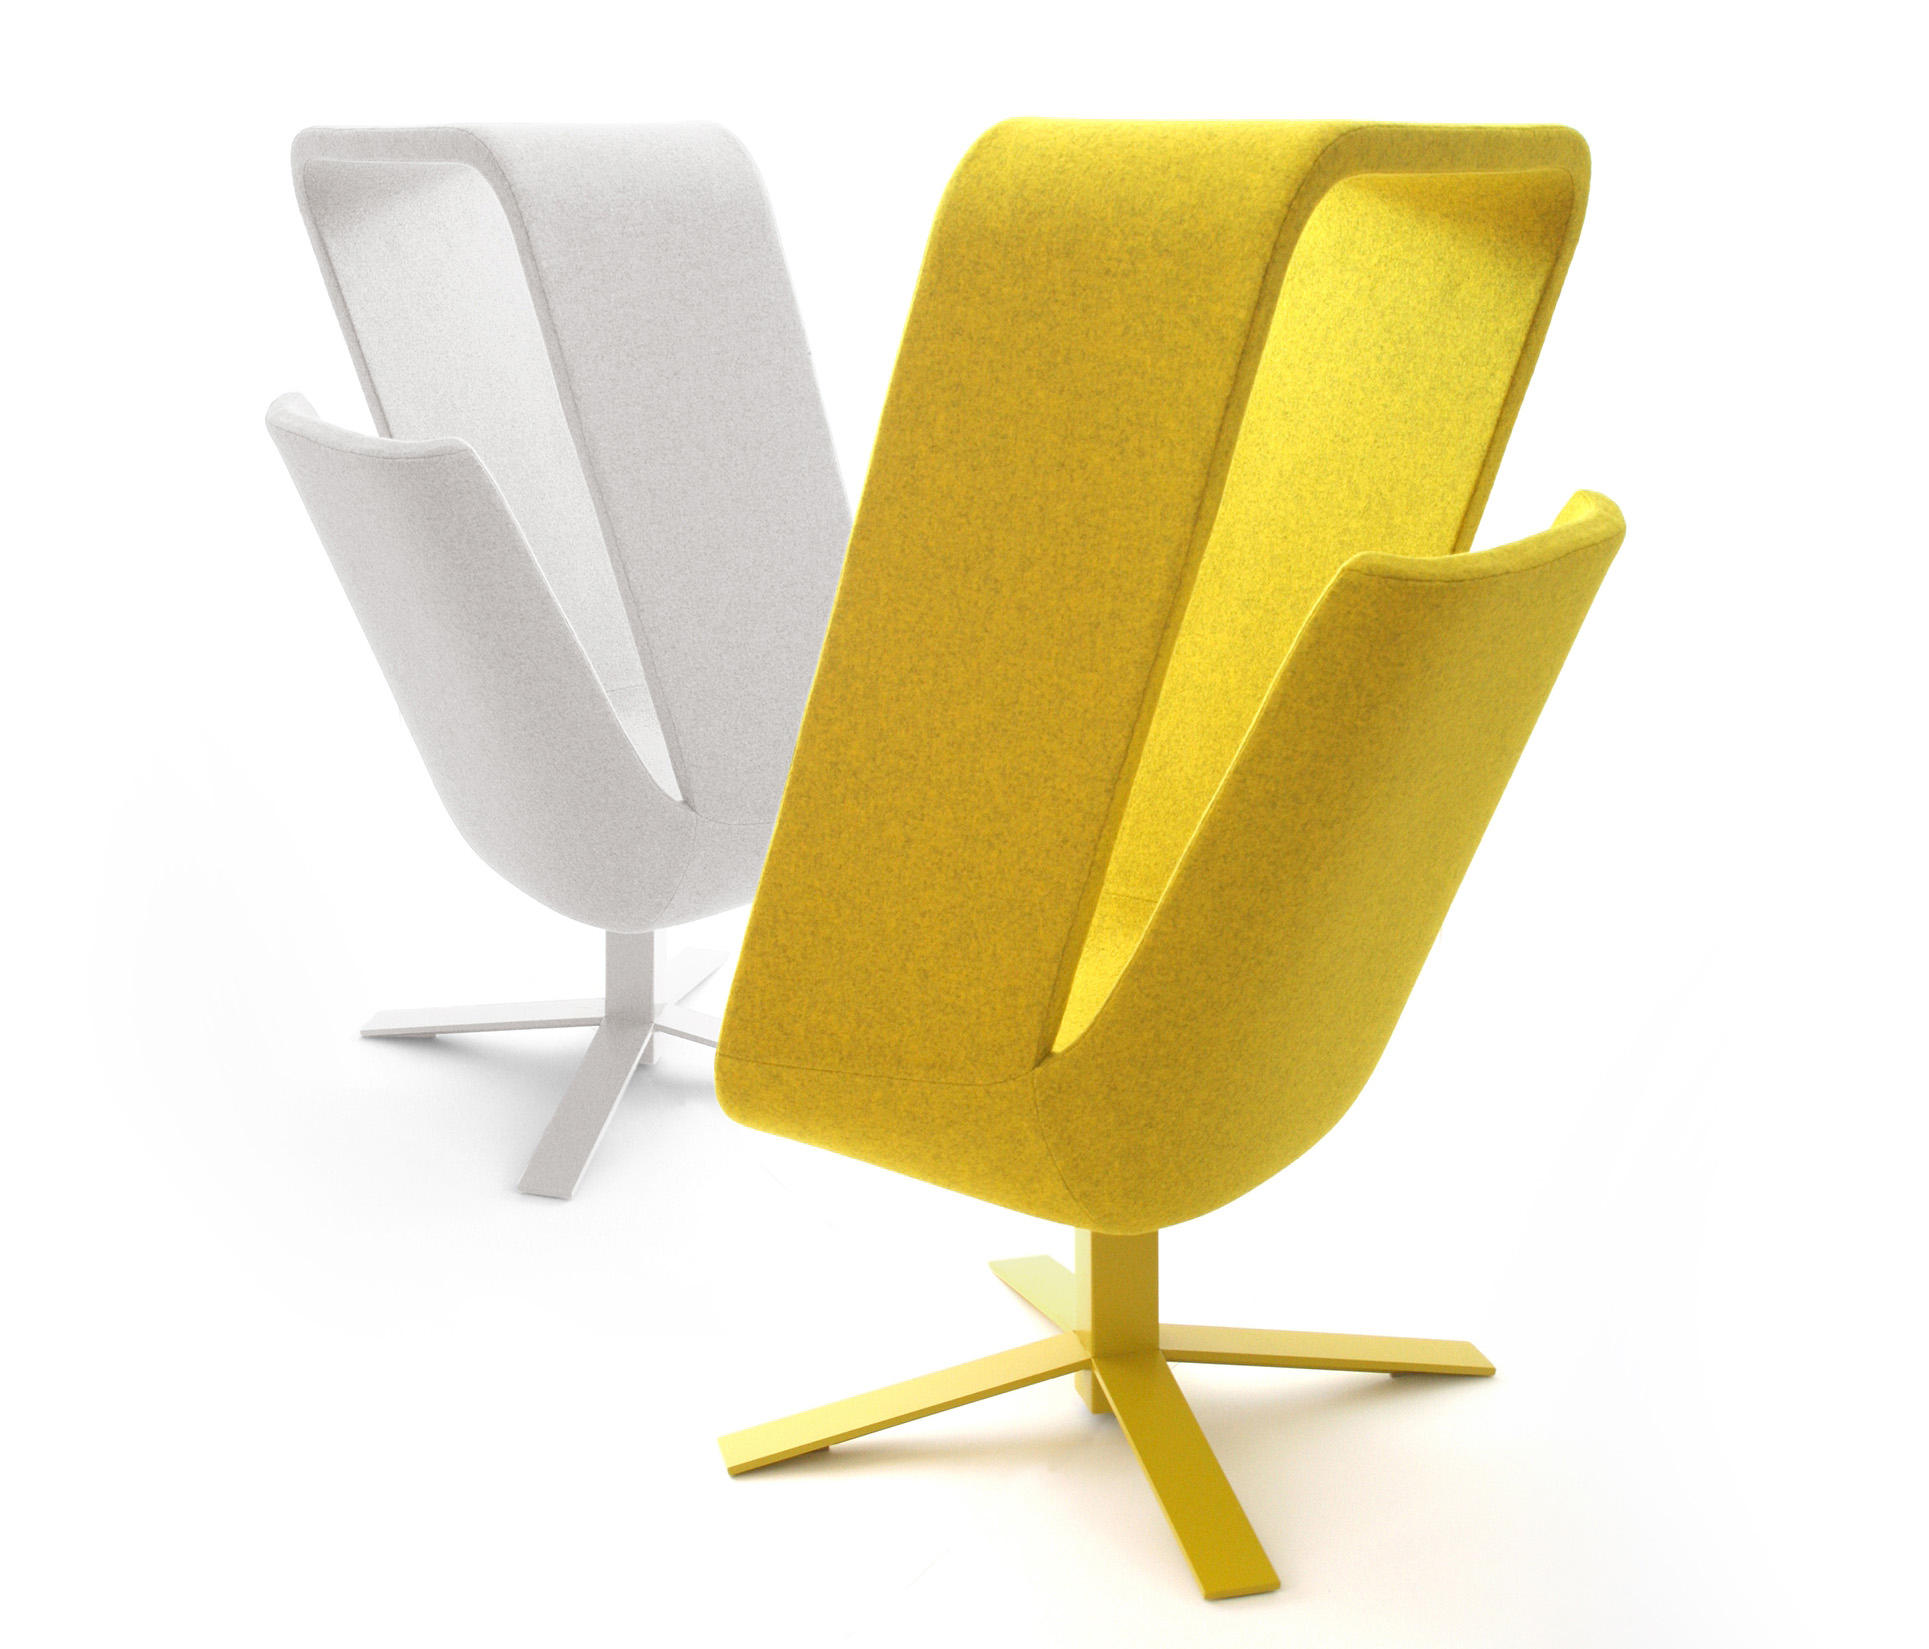 WINDOWSEAT CANOPY Lounge work seating from Haworth